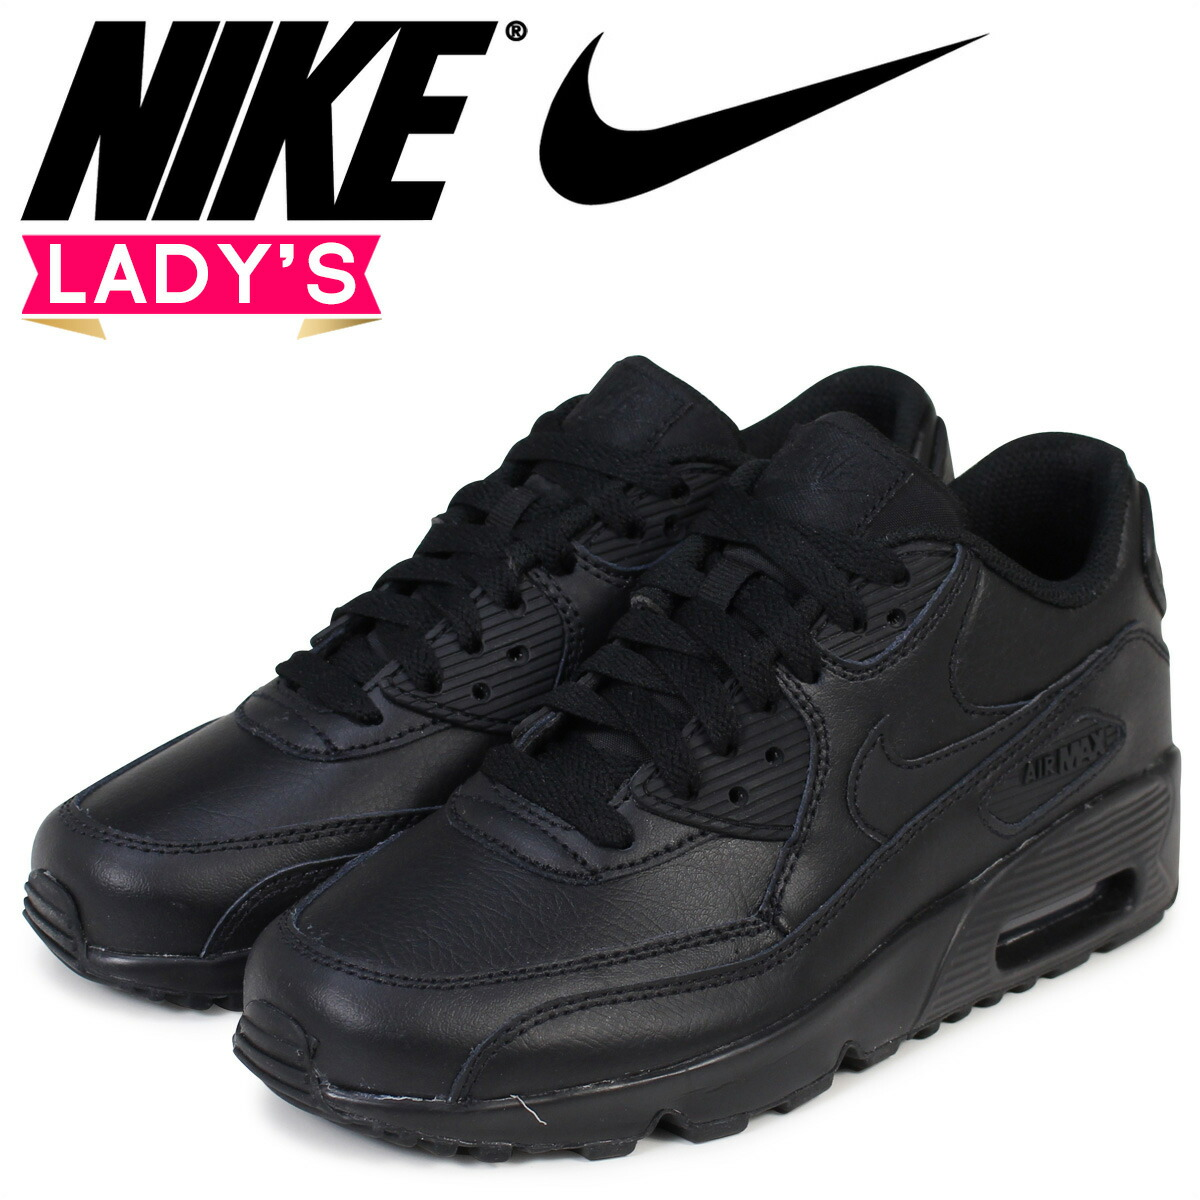 best sneakers 80db2 fa11e Nike NIKE Air Max 90 Lady's sneakers AIR MAX 90 LEATHER GS 833,412-001  black black [197]